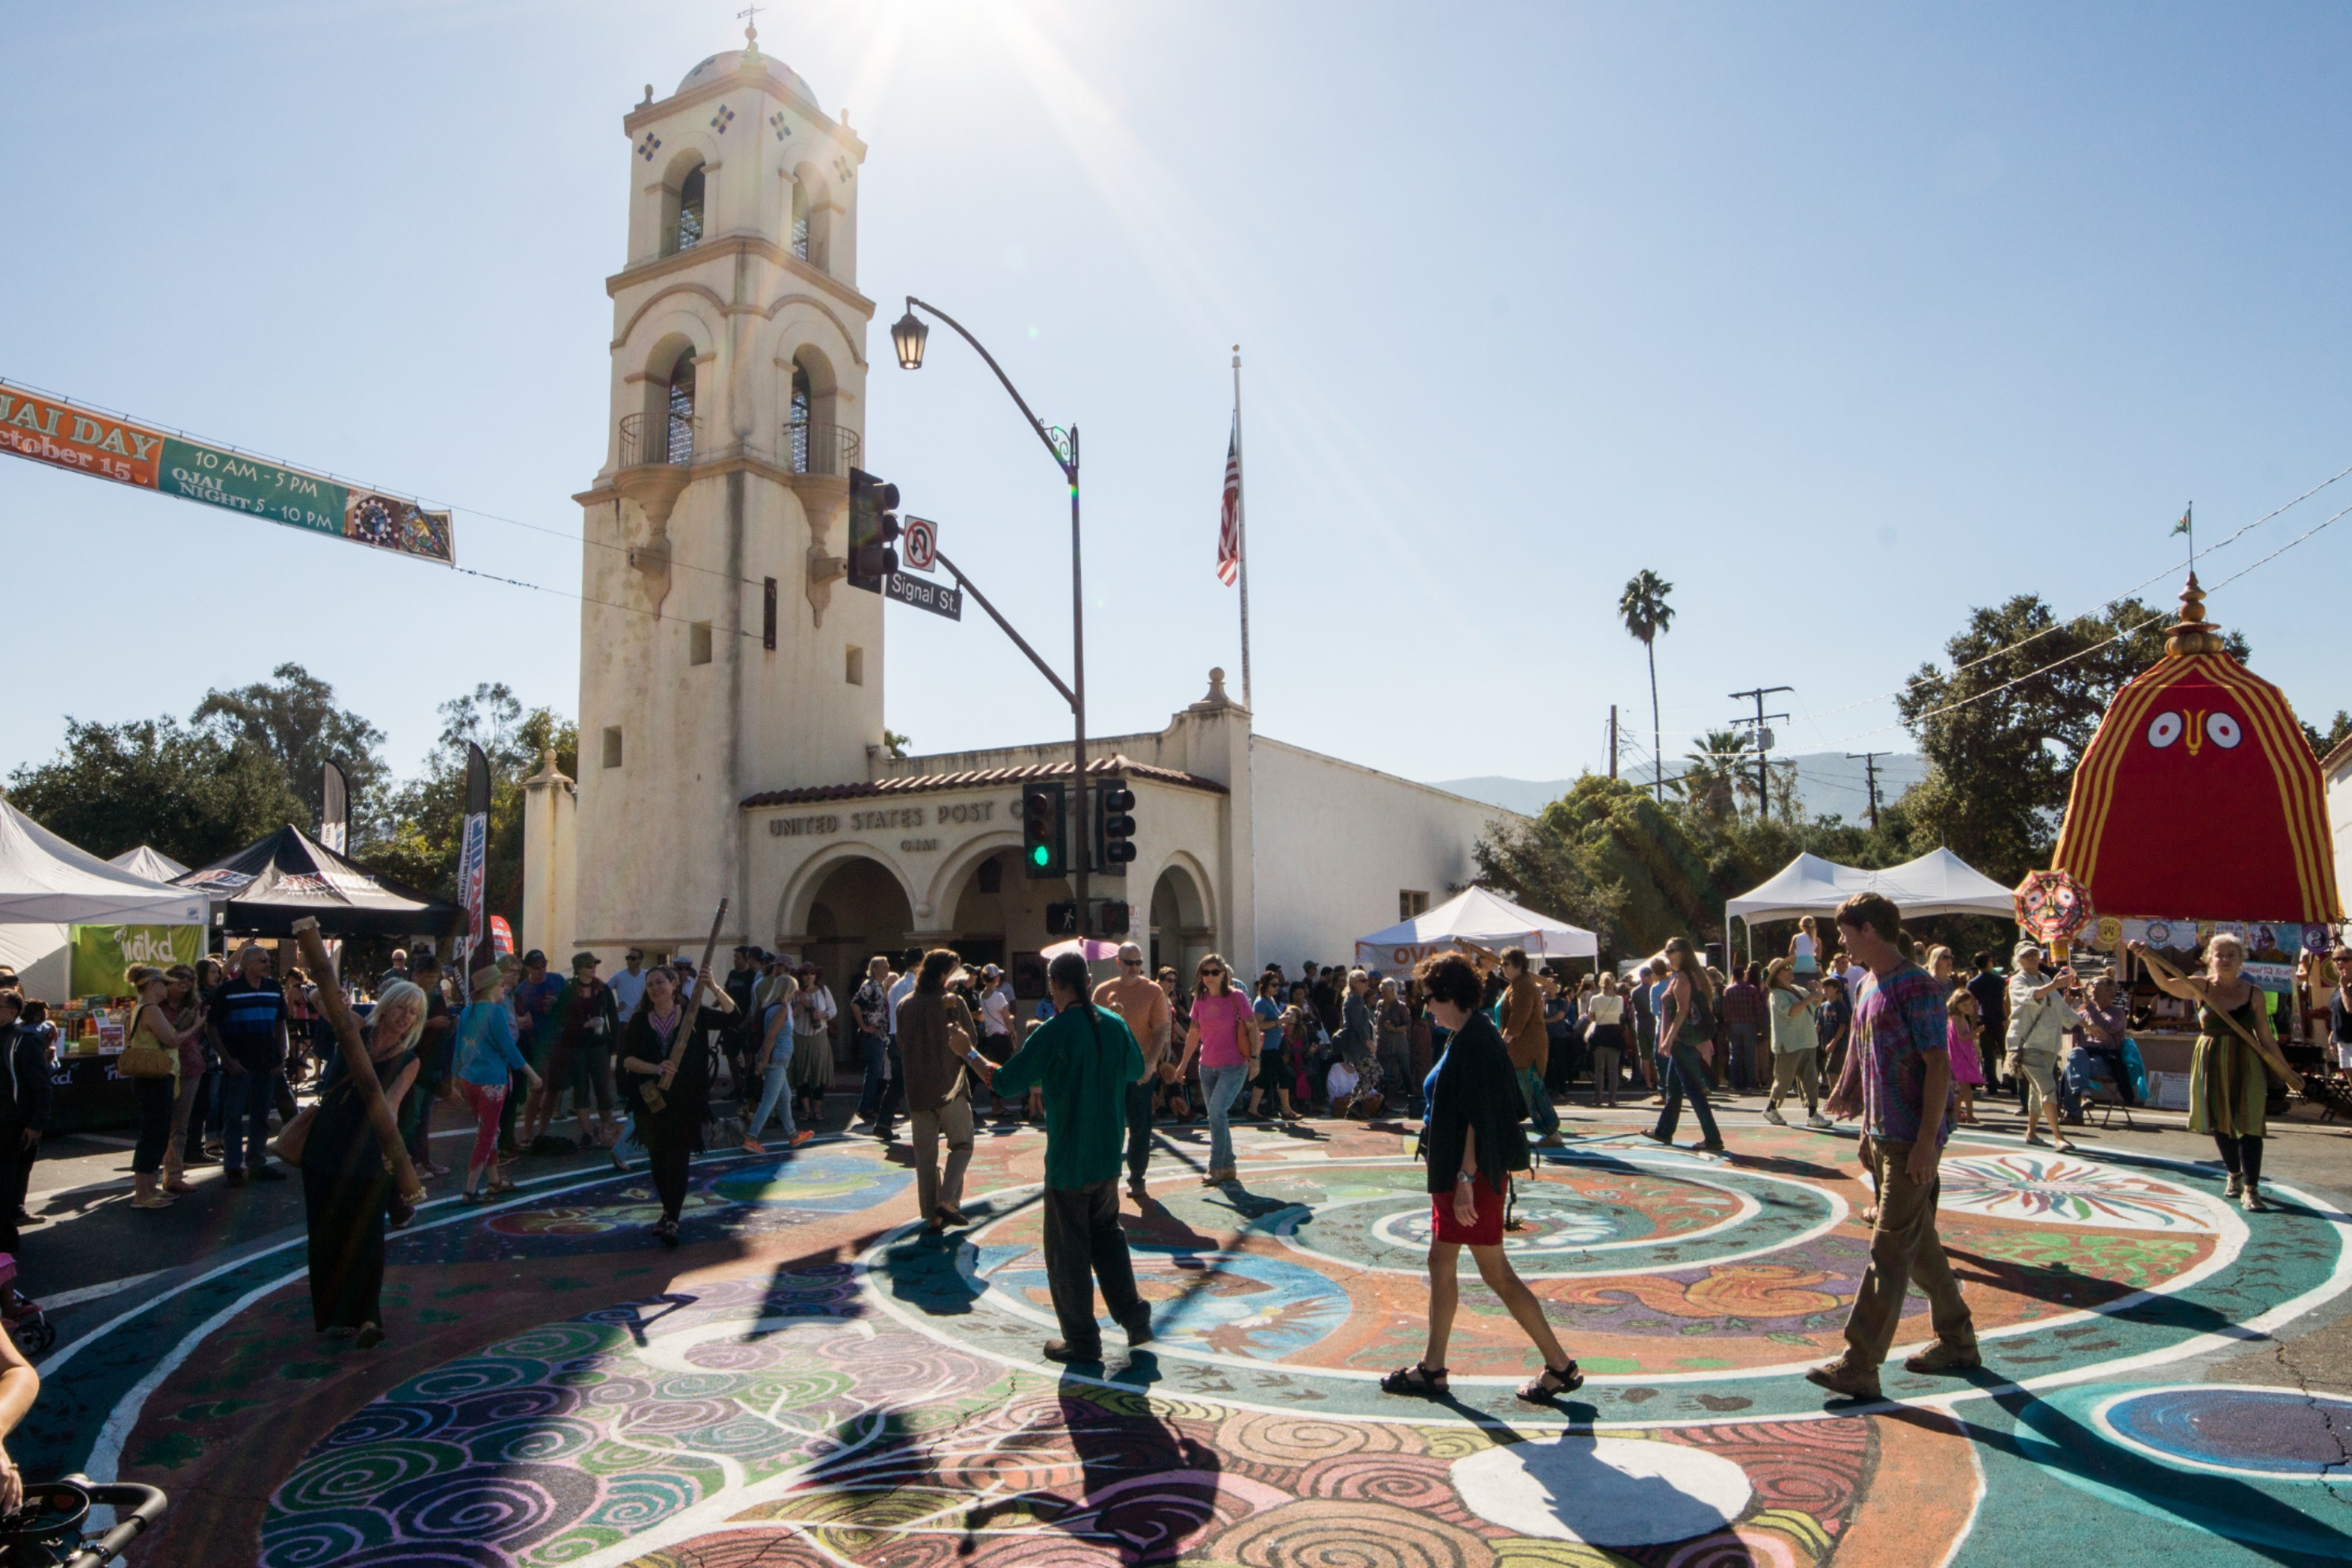 Ojai Day is No Longer Accepting Applications